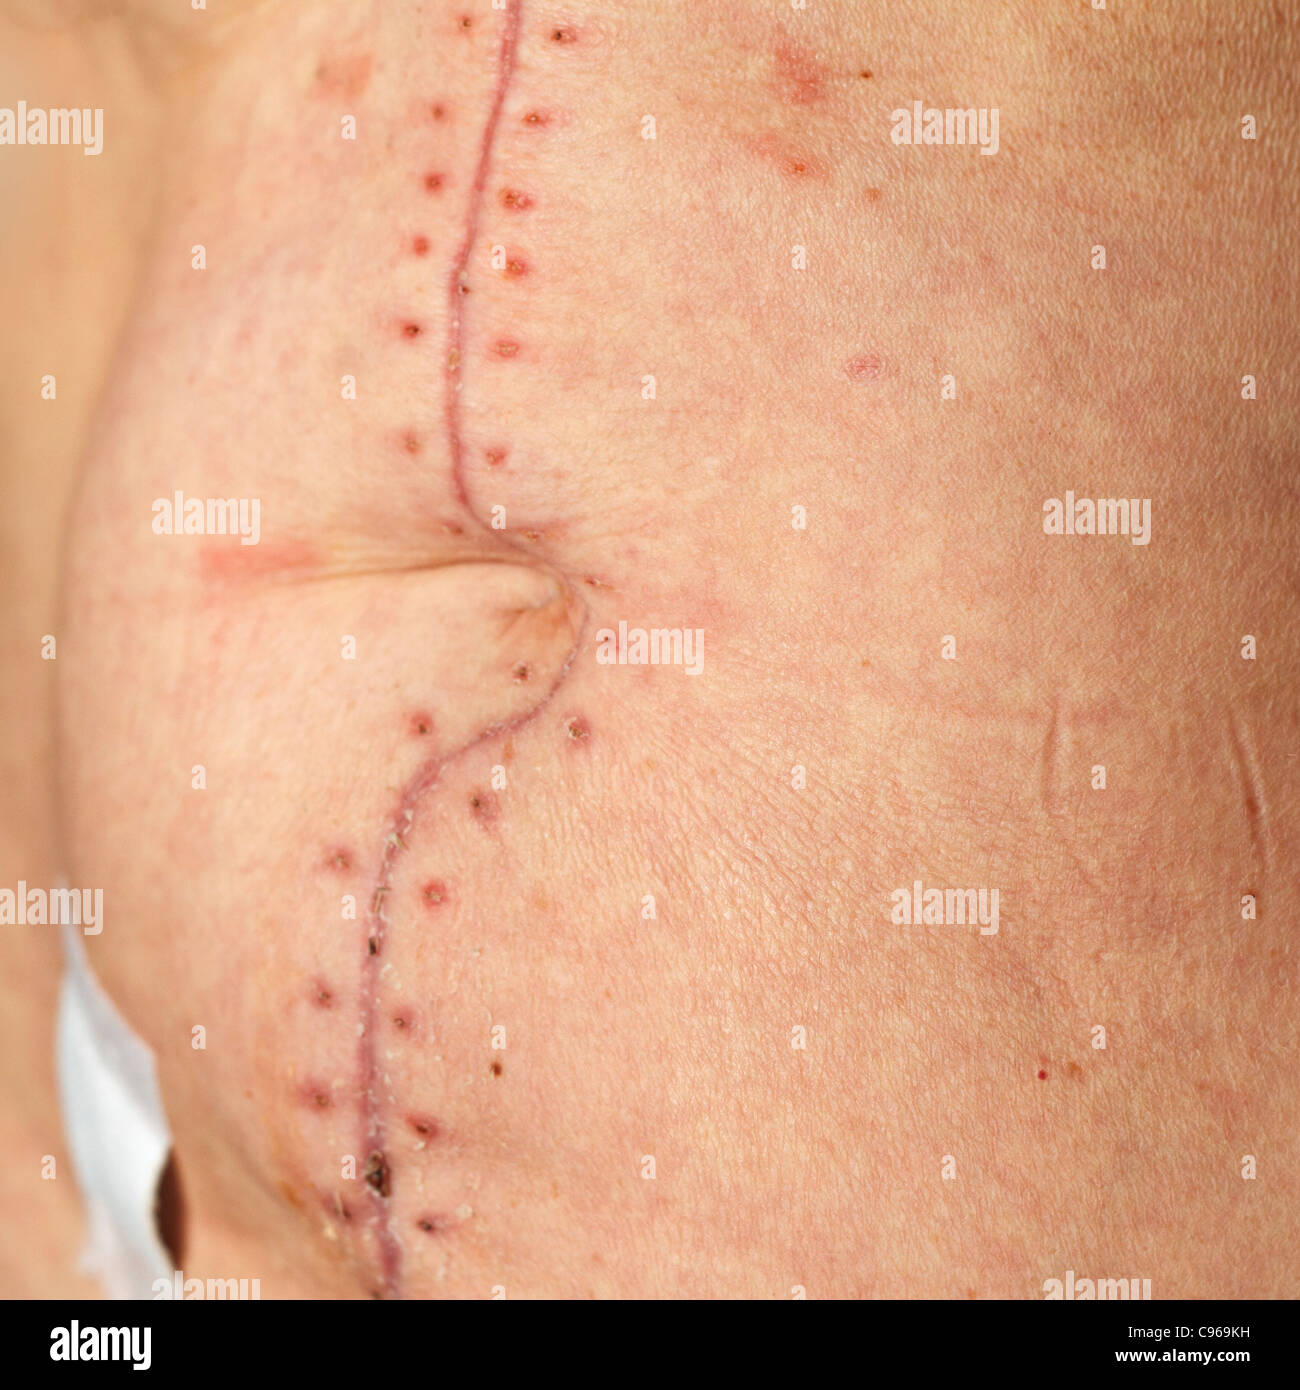 Laparotomy incision scar 2 weeks after opreration - Stock Image